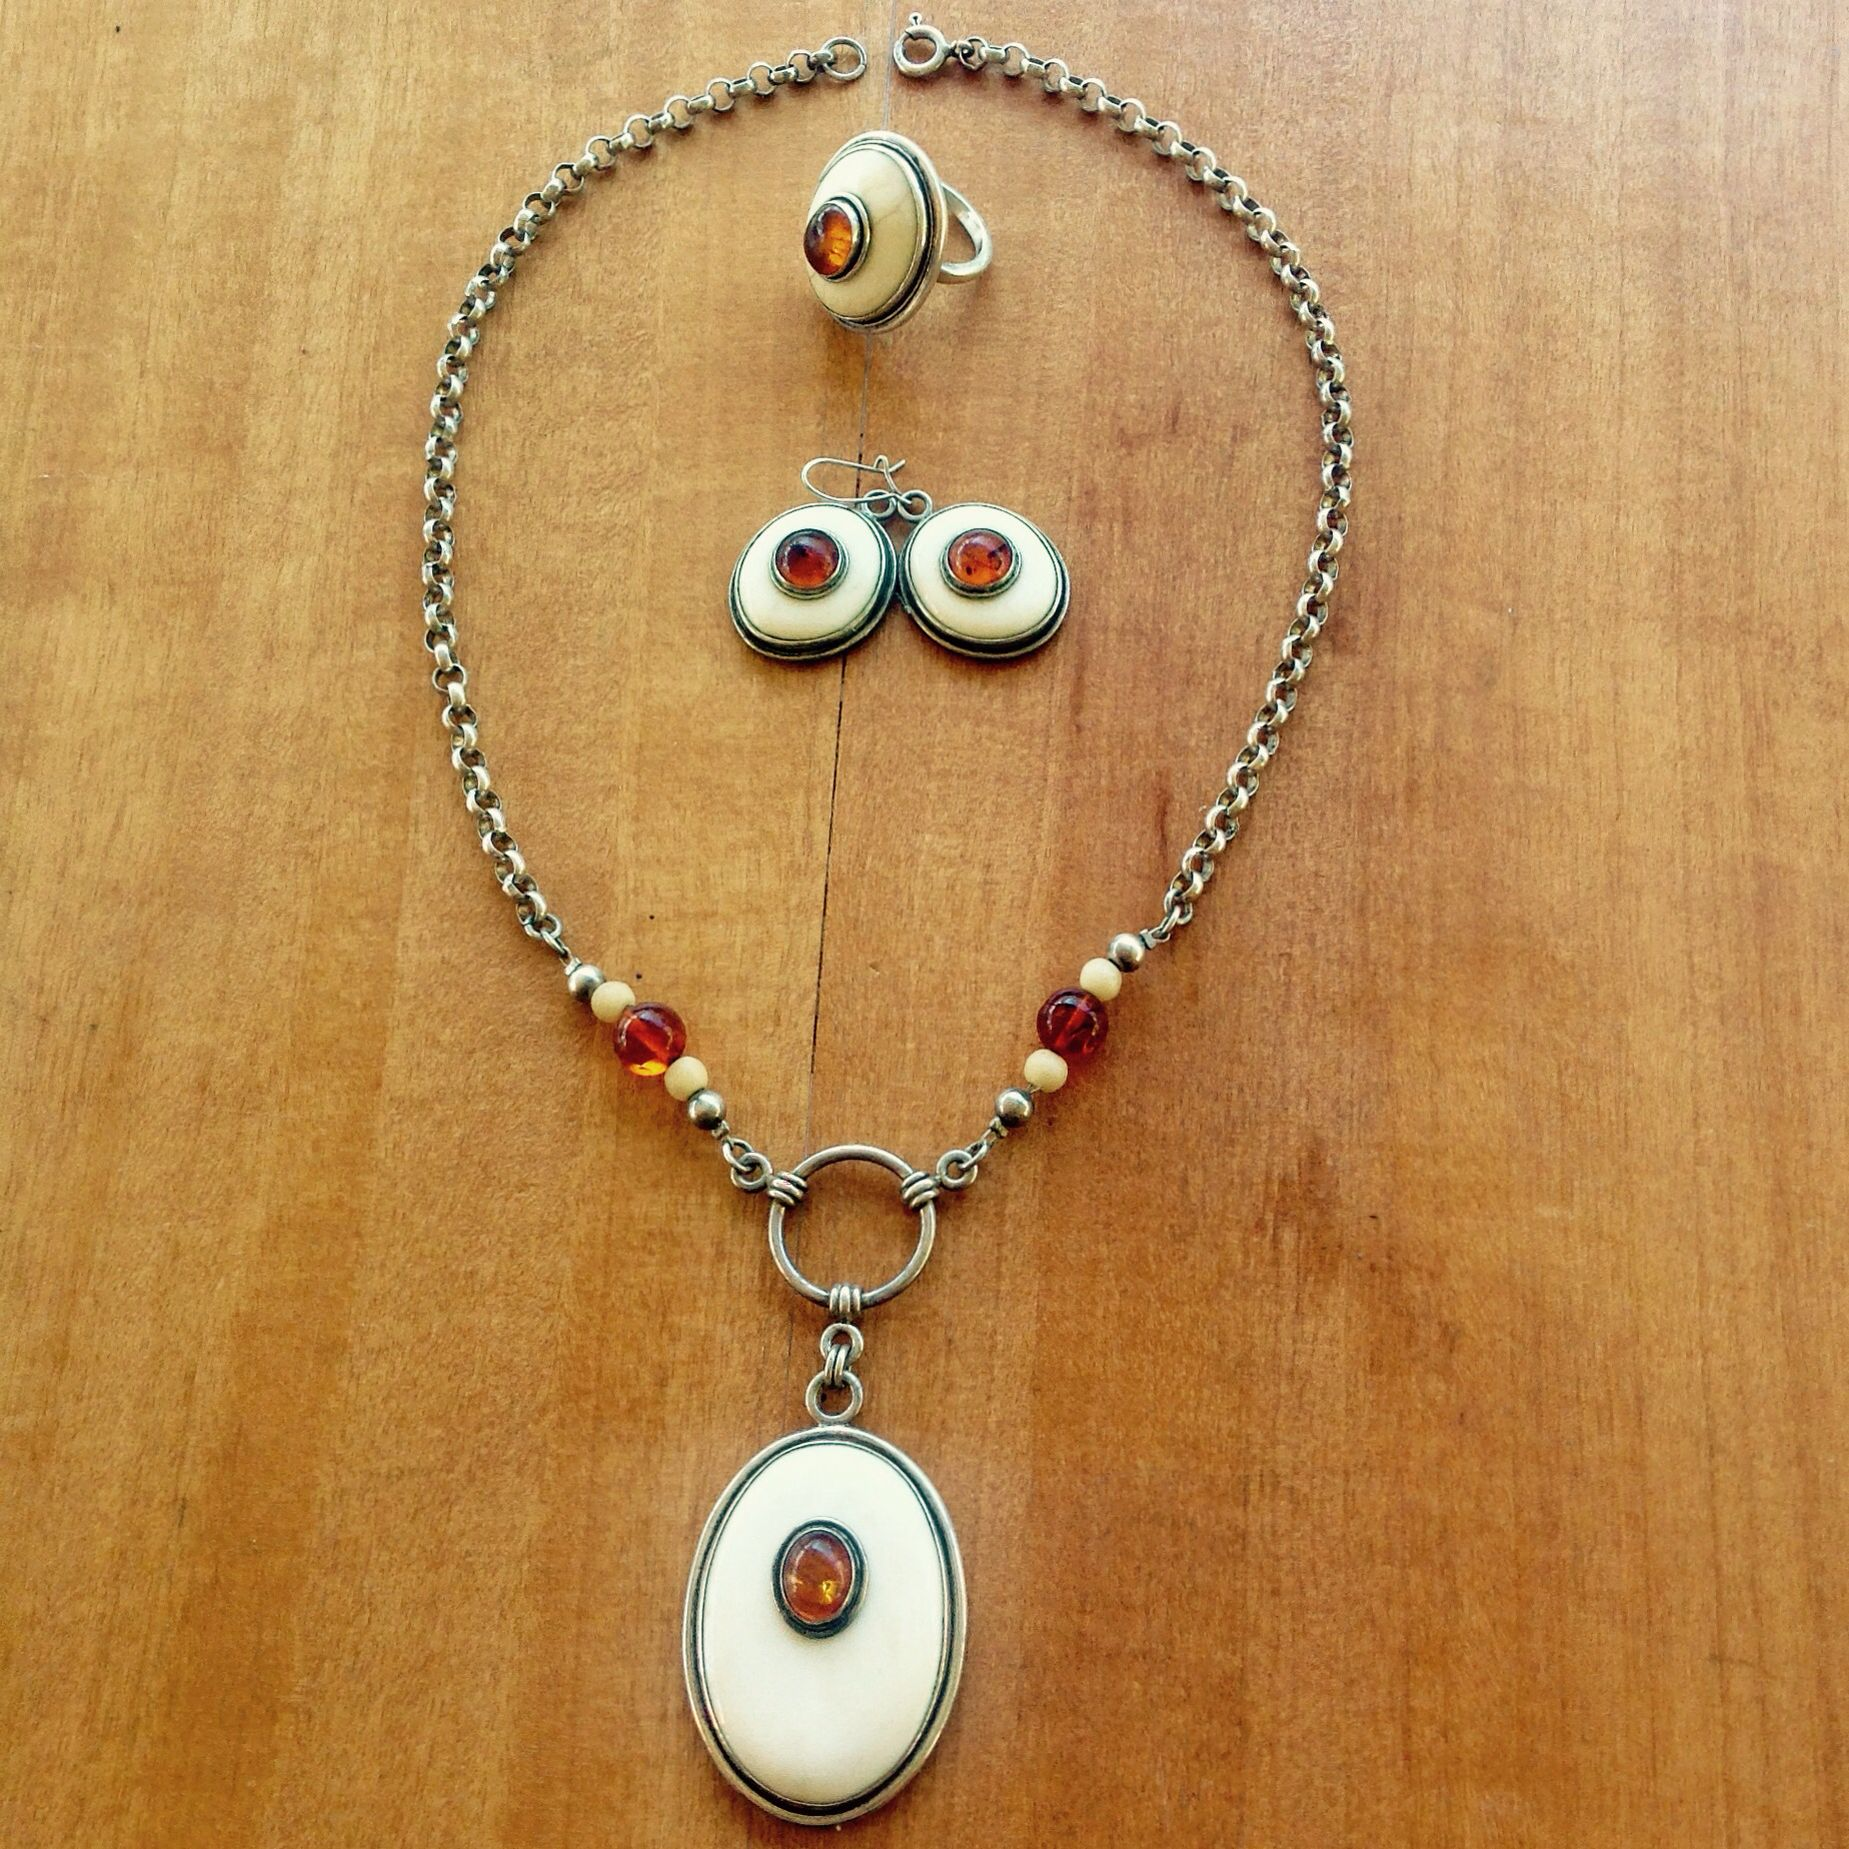 Silver, bone and amber necklace with matching ring and earrings. By Gecko Skin Jewellery.